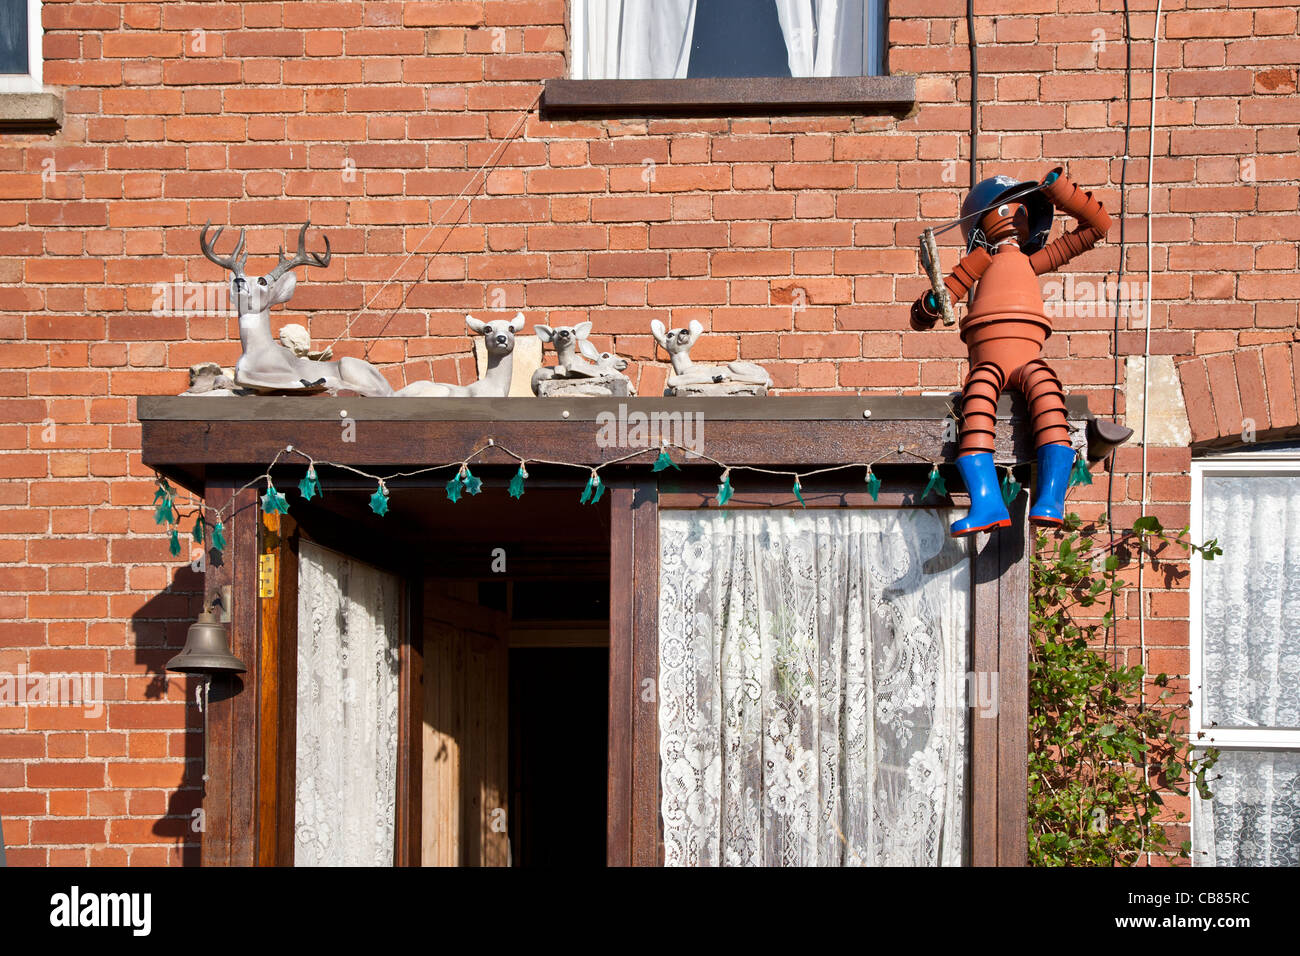 Haustür Vordach Mit Ziegeln Porch Roof Stockfotos Porch Roof Bilder Alamy